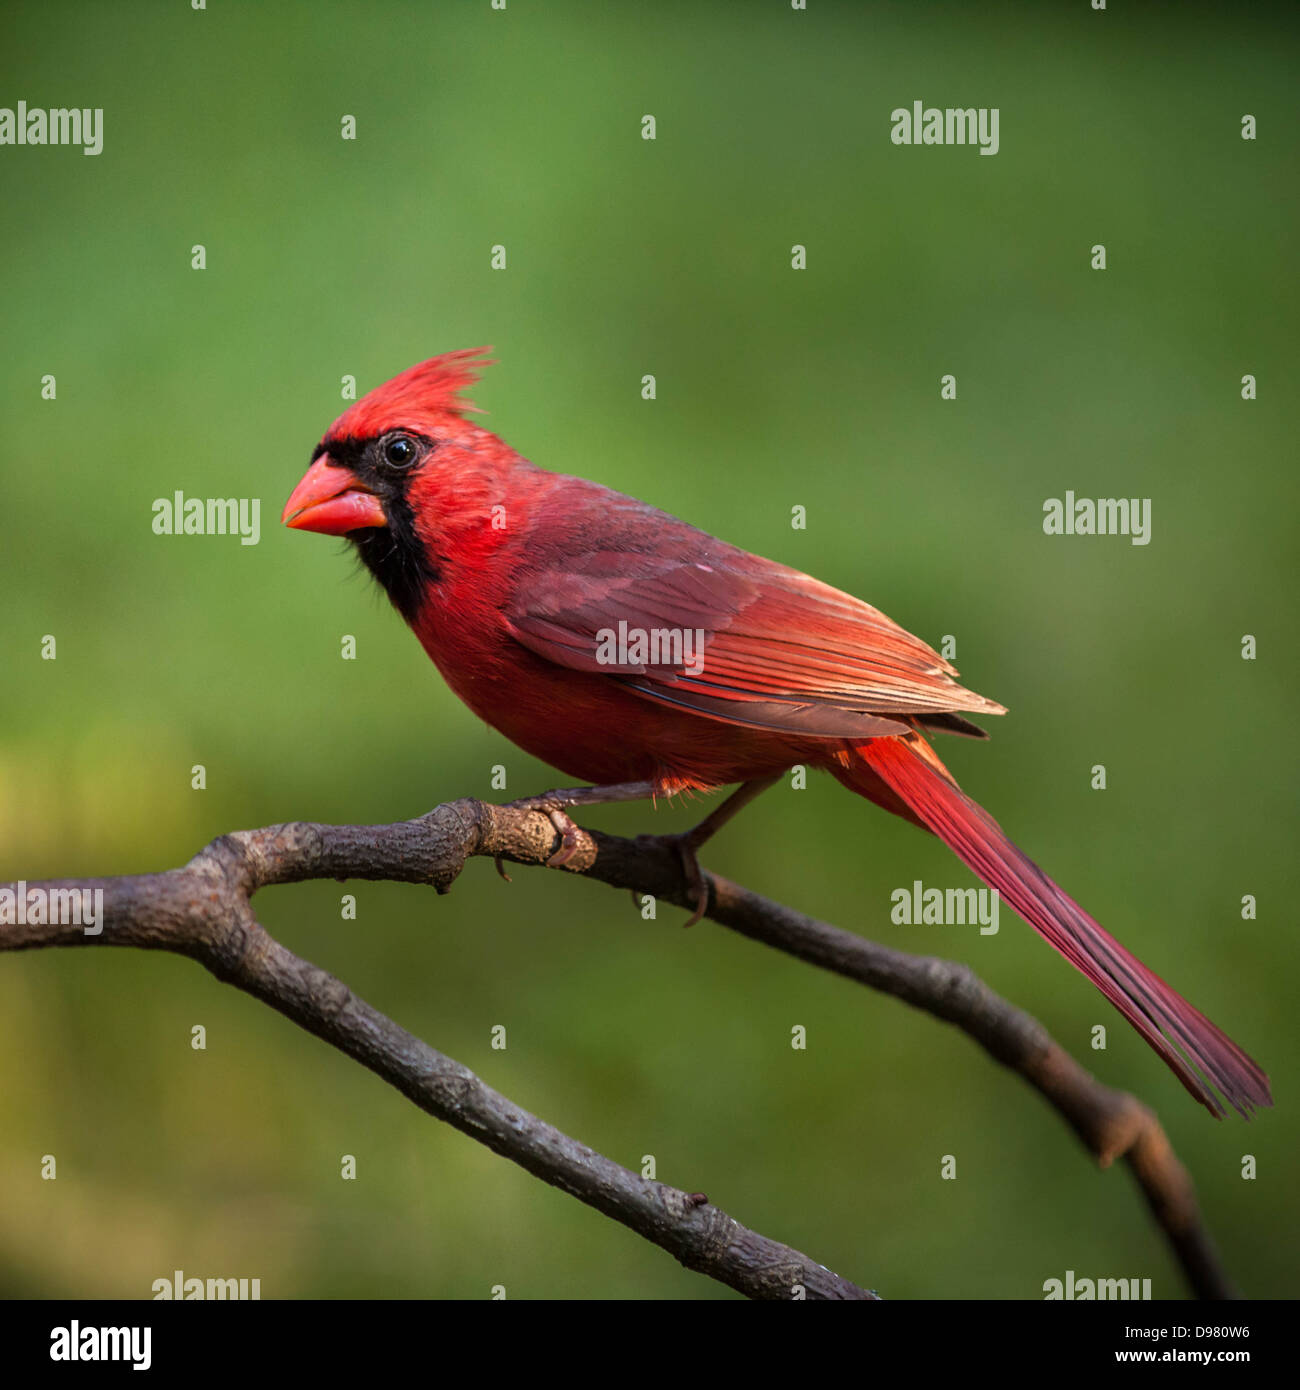 Male Northern Cardinal perched on a branch against a green background - Stock Image